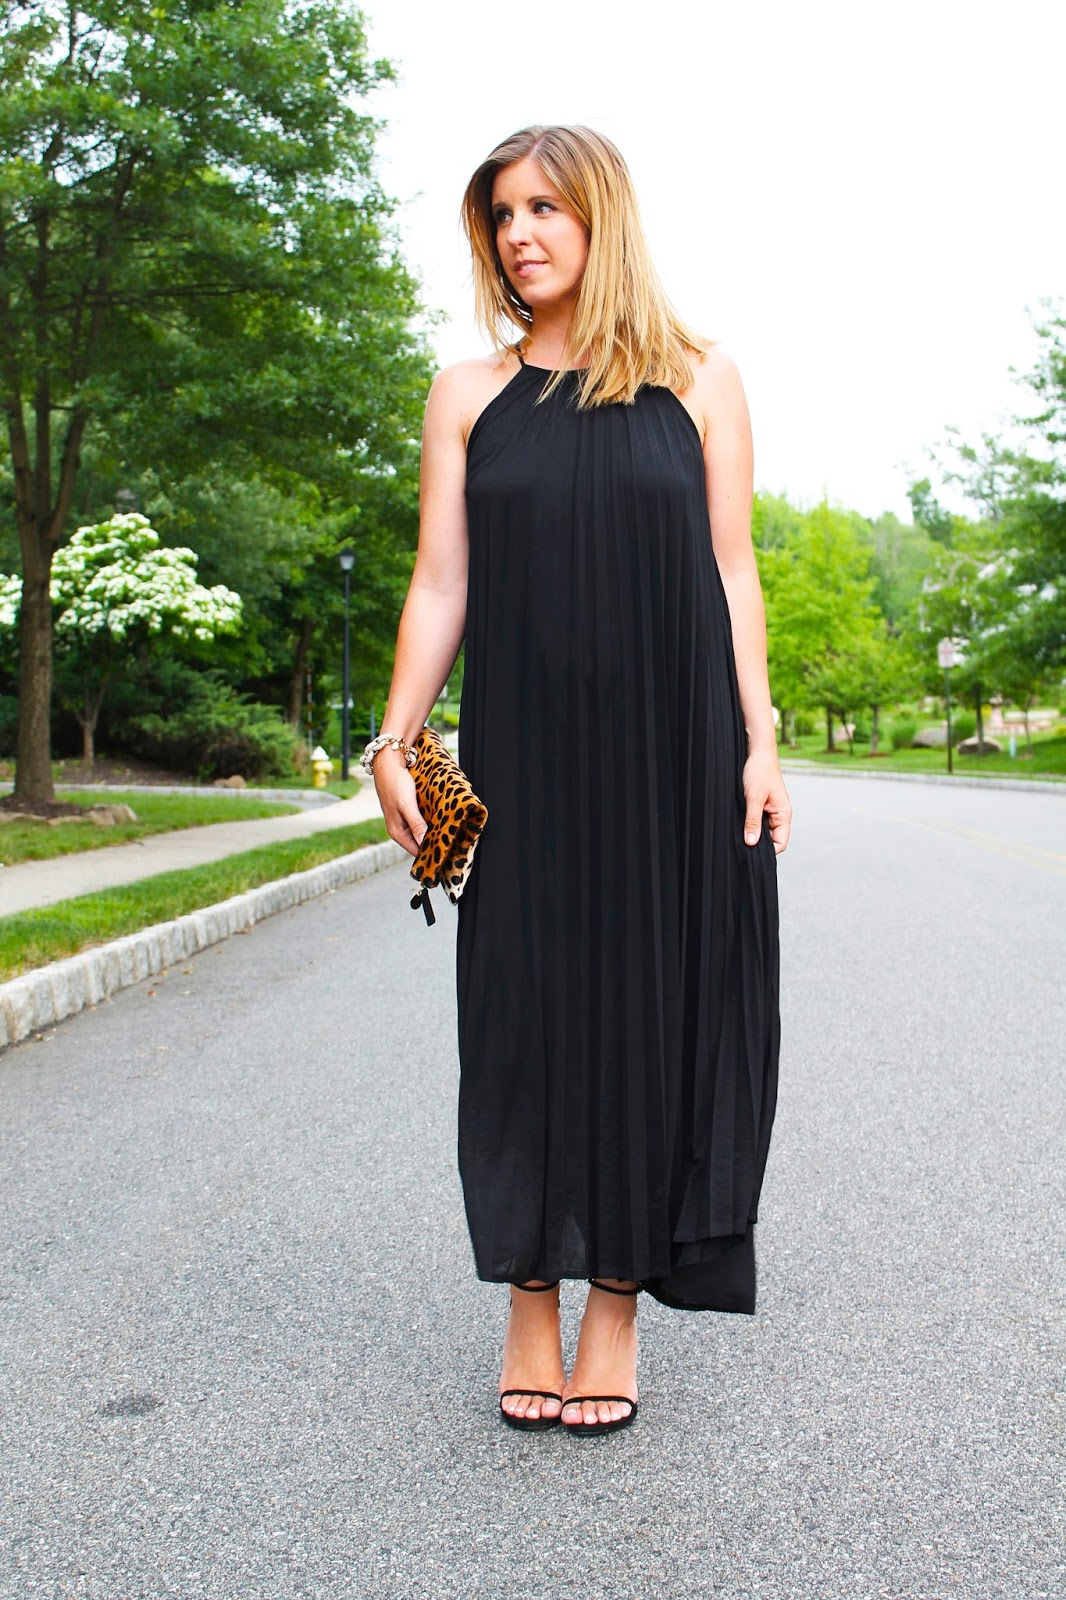 The Pleated Maxi Dress